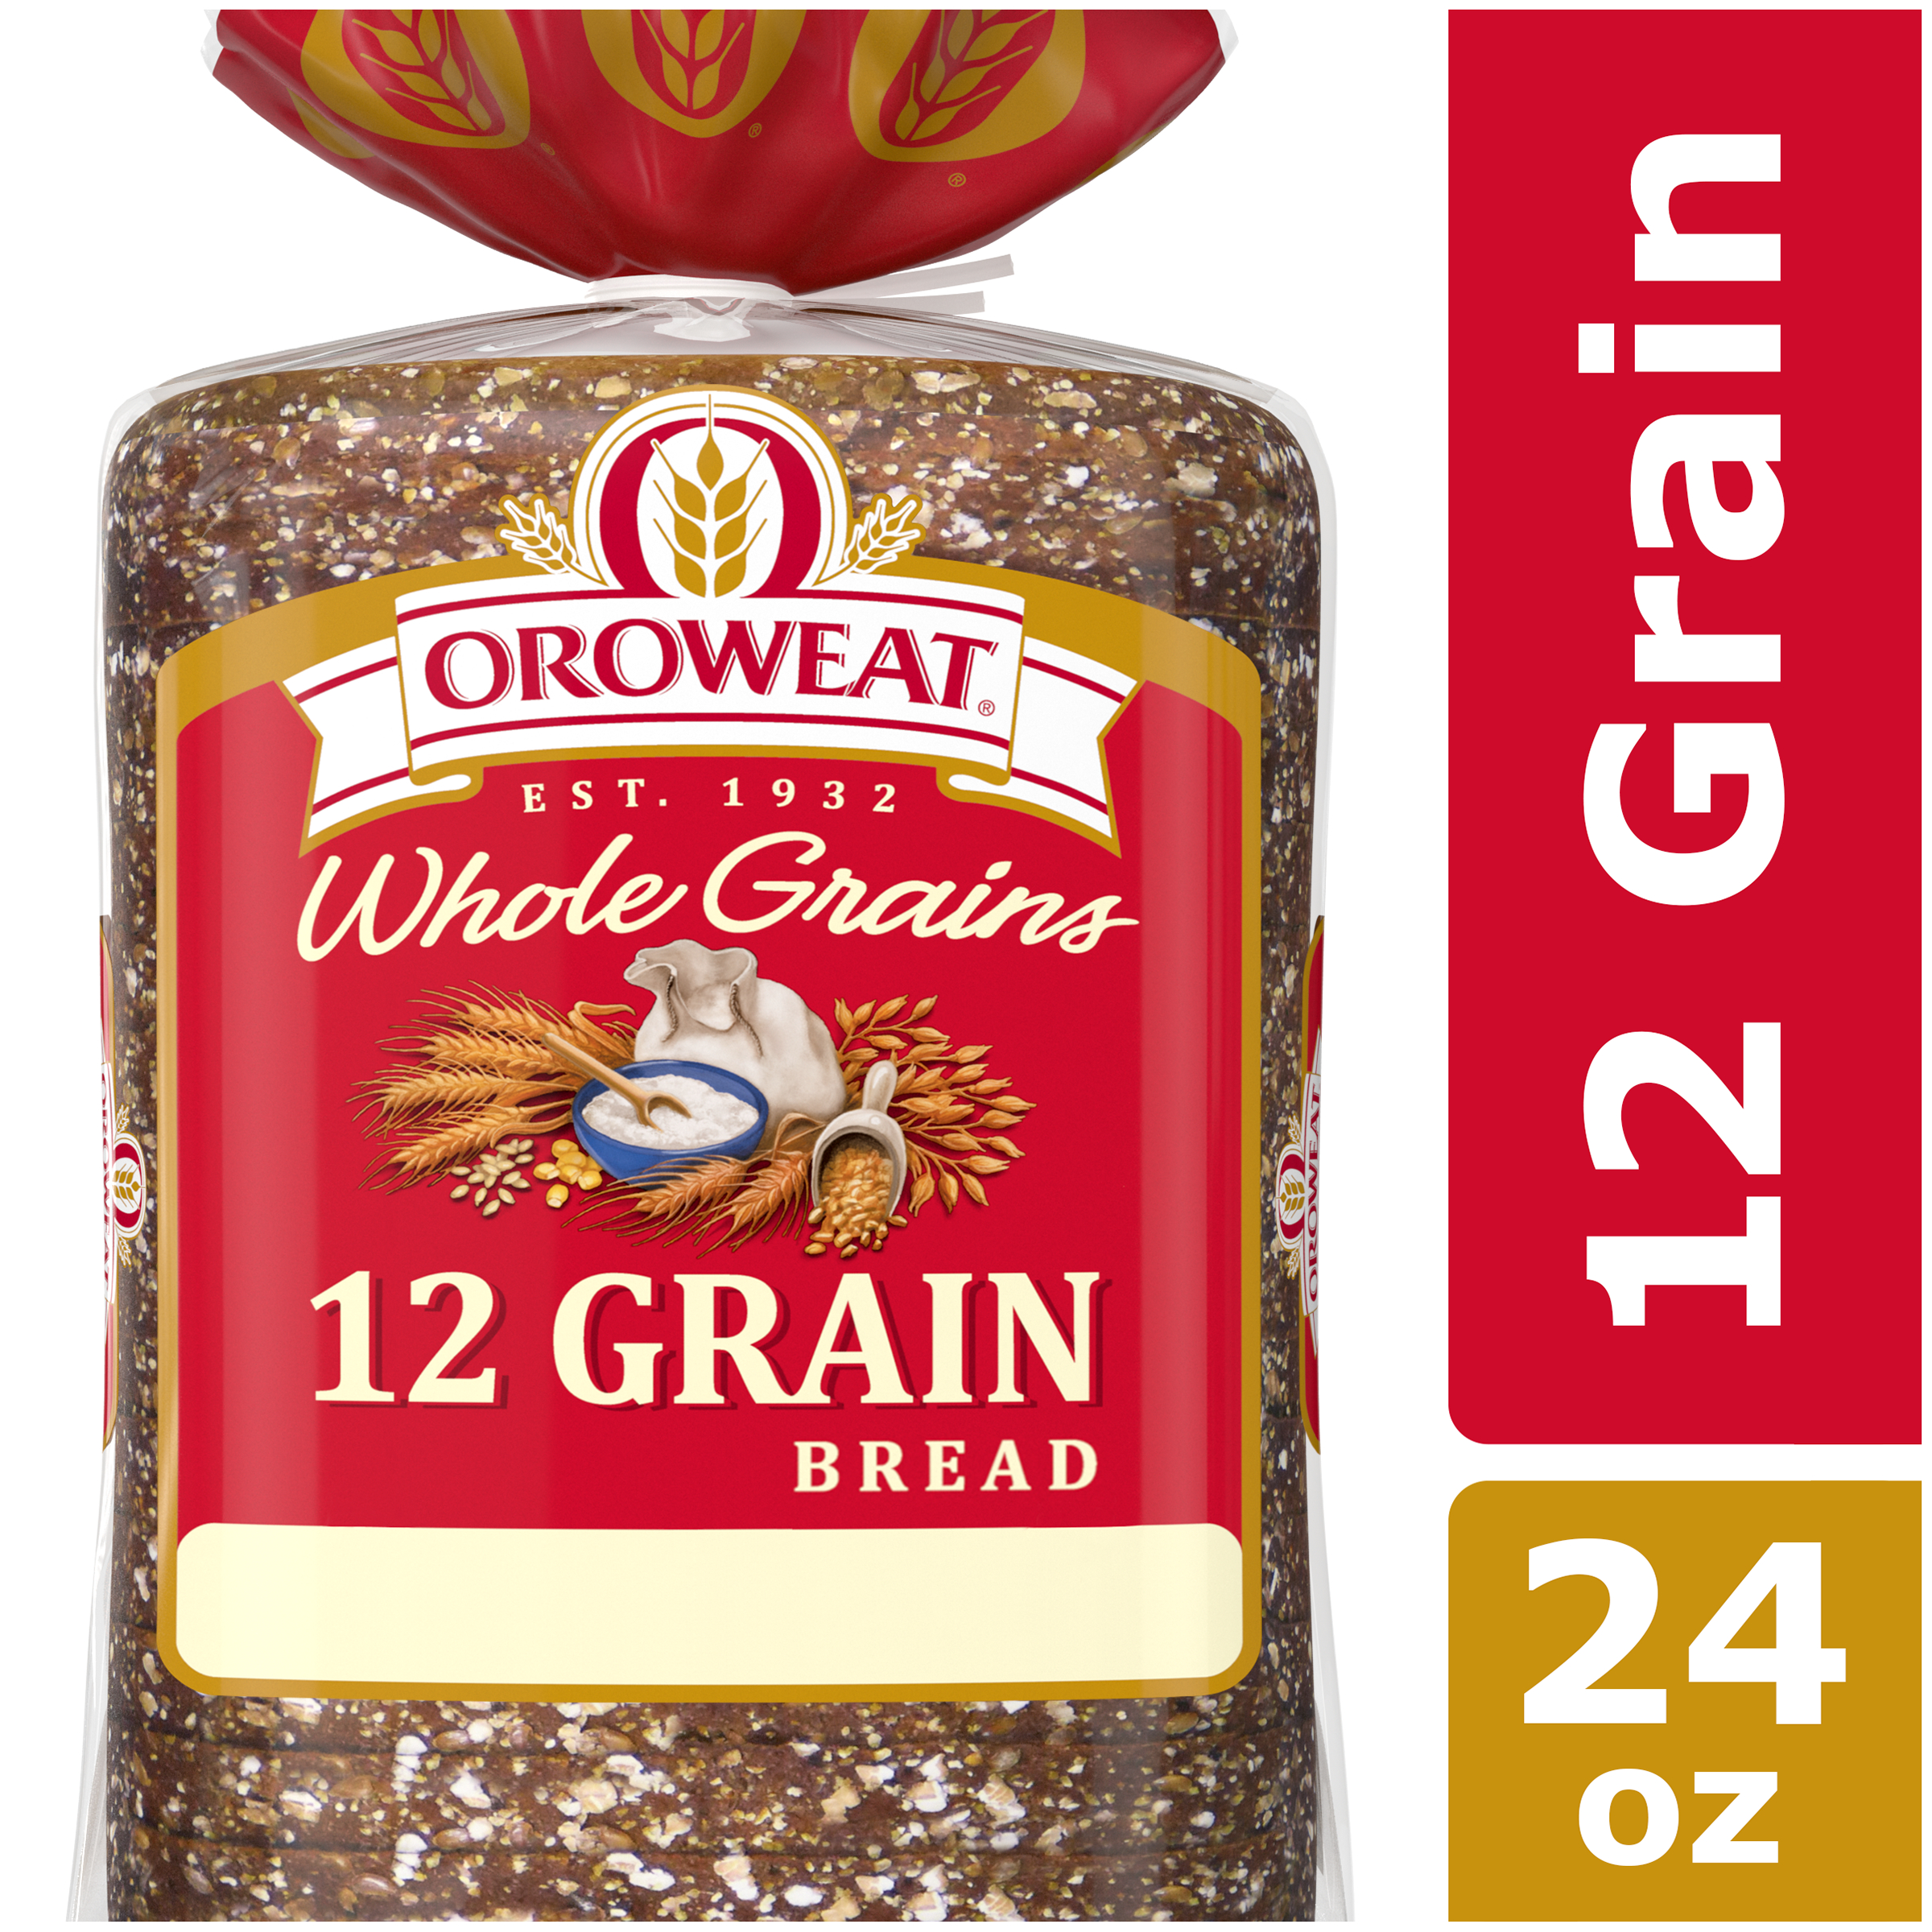 Oroweat Whole Grains 12 Grain Bread, Made with Whole Wheat, 24 oz